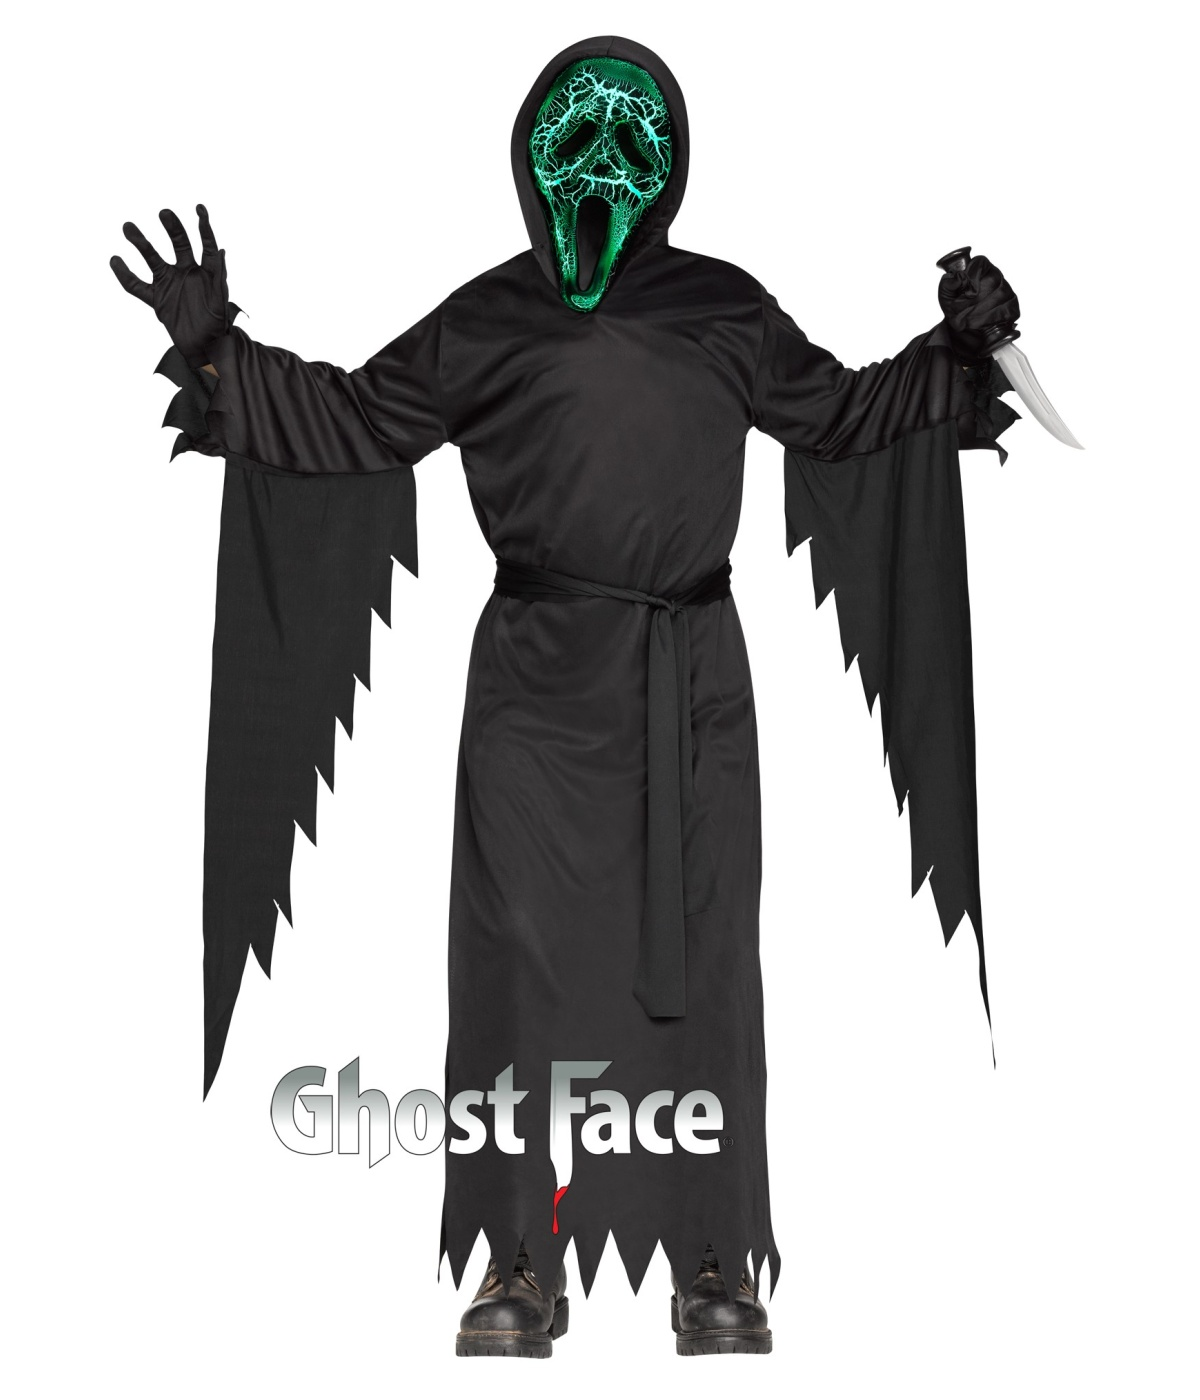 Boy Costumes - Boys Ghost Costumes